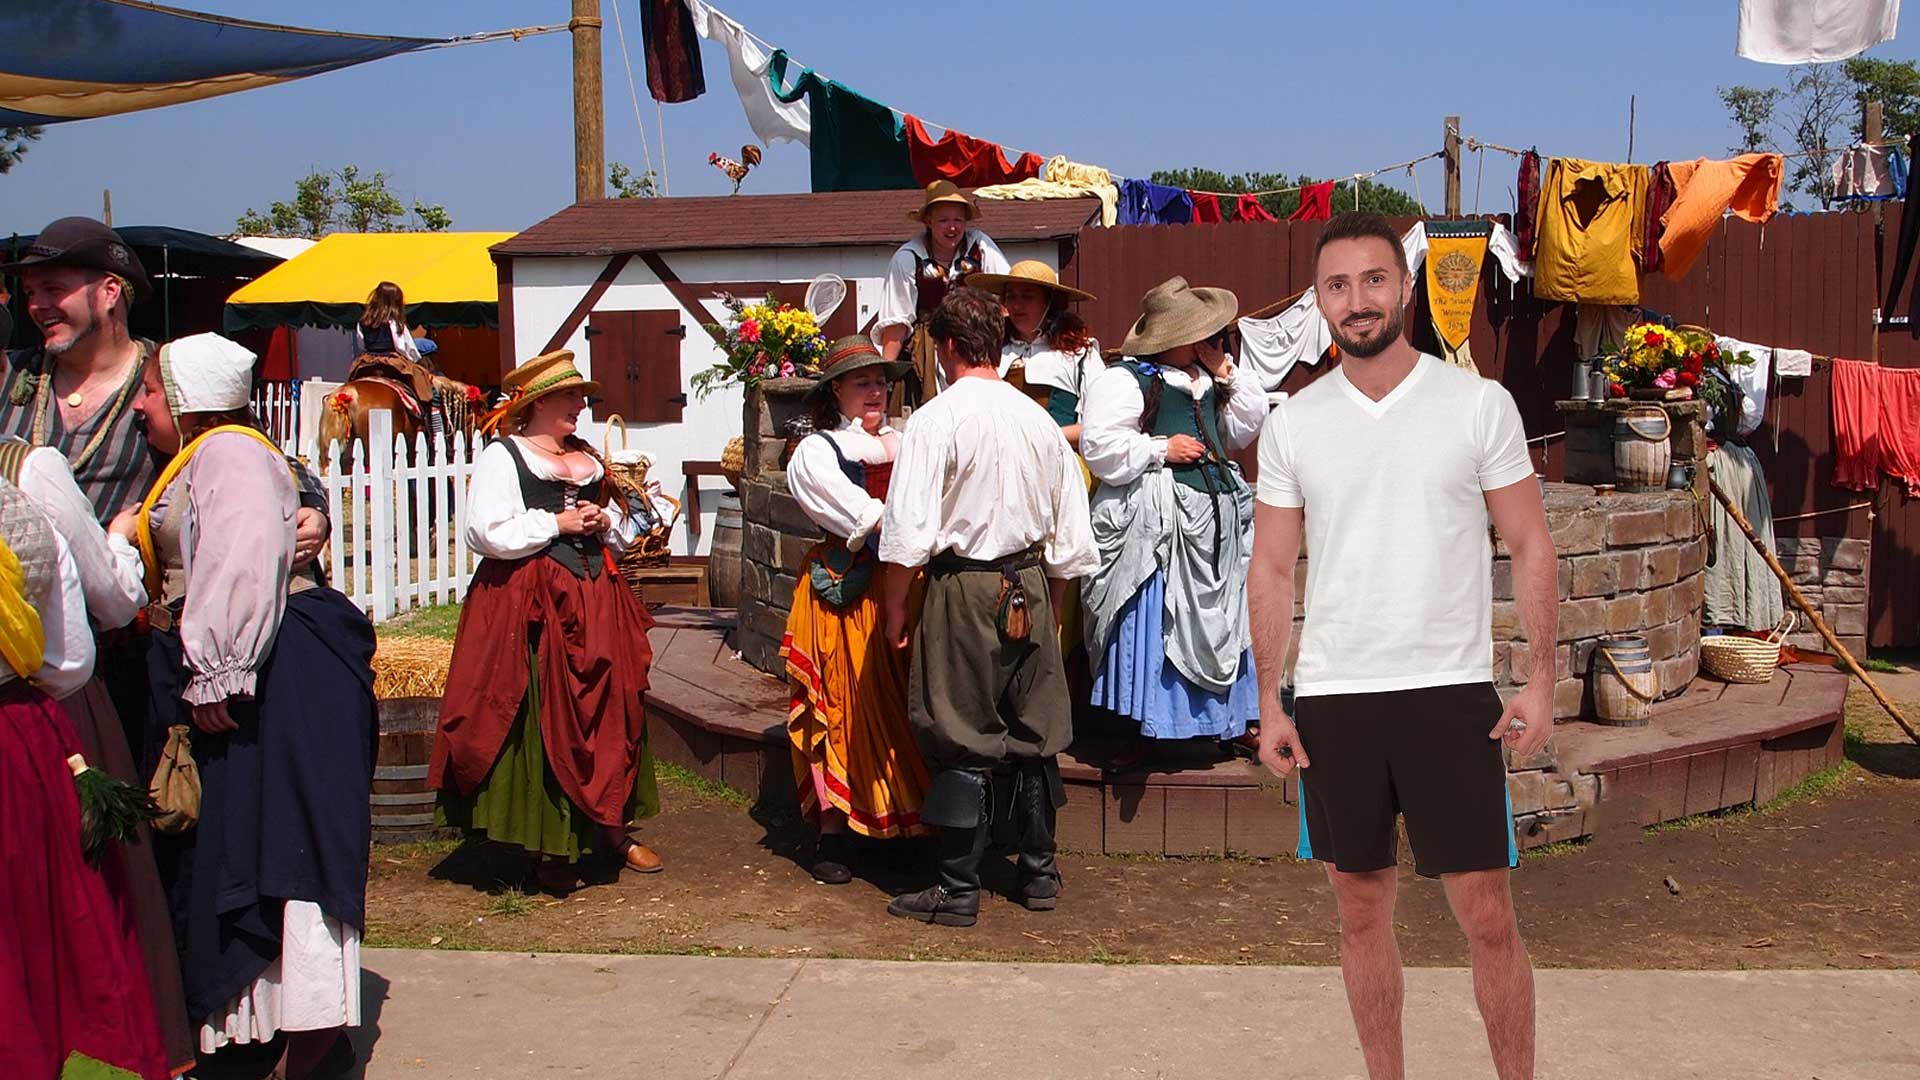 Guy-Wearing-Gym-Shorts-at-Renaissance-Festival-Completely-Killing-the-Vibe.jpg